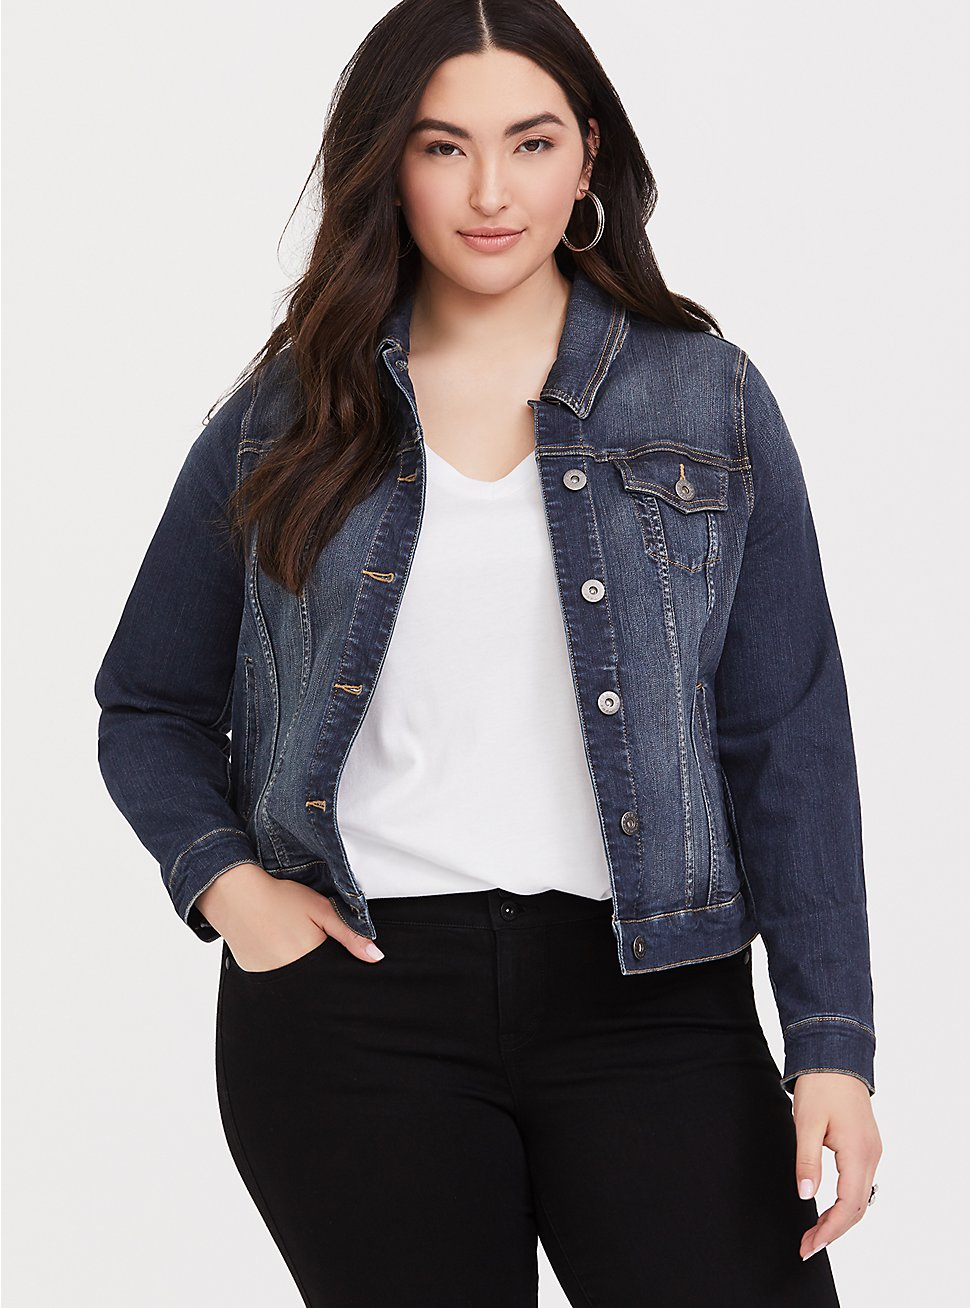 Denim Jacket - Medium Wash, MEDIUM WASH, hi-res